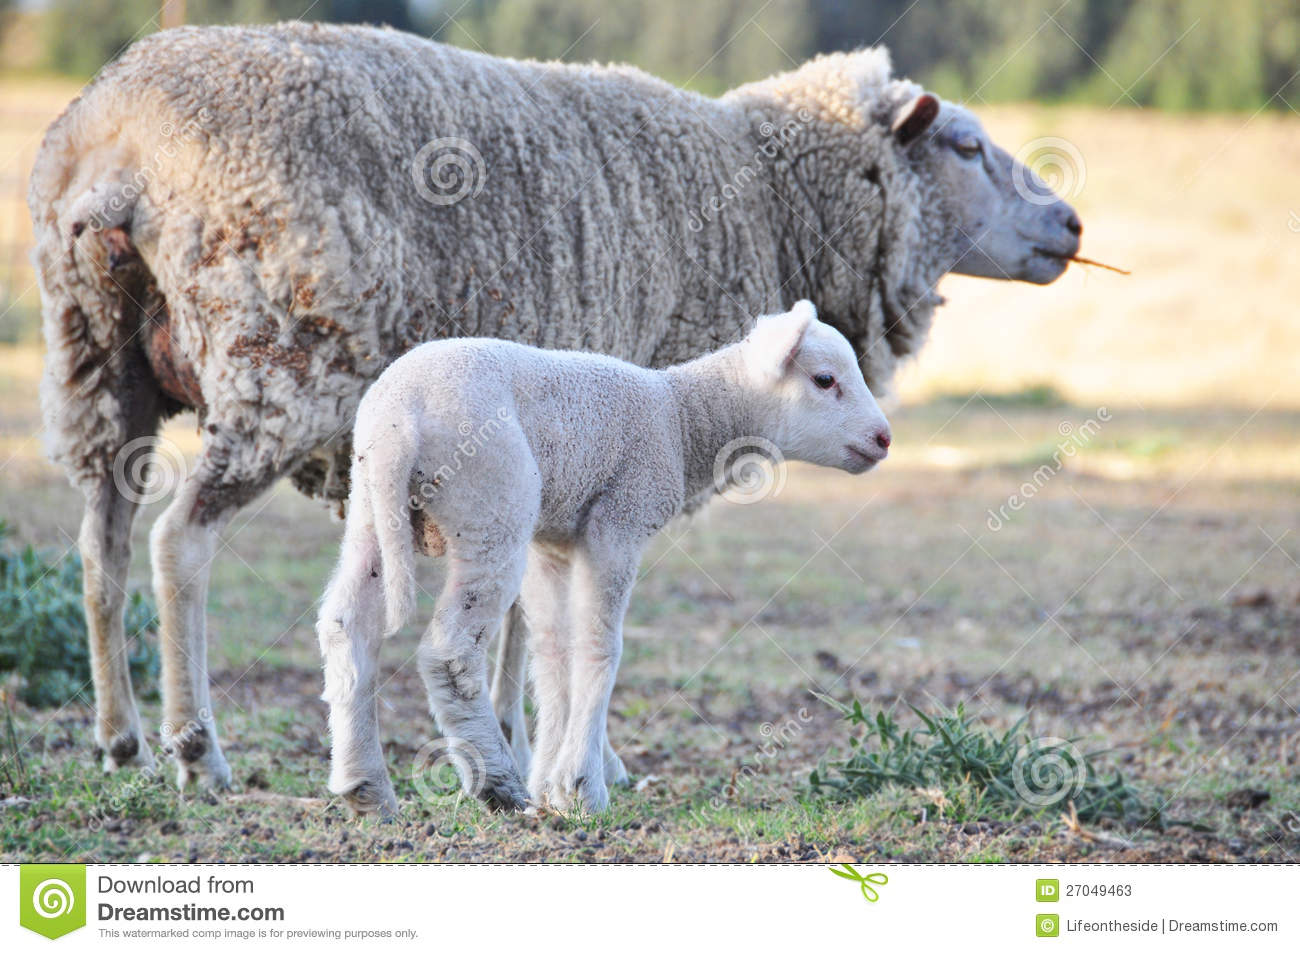 Merino ewe sheep with her new baby Spring lamb